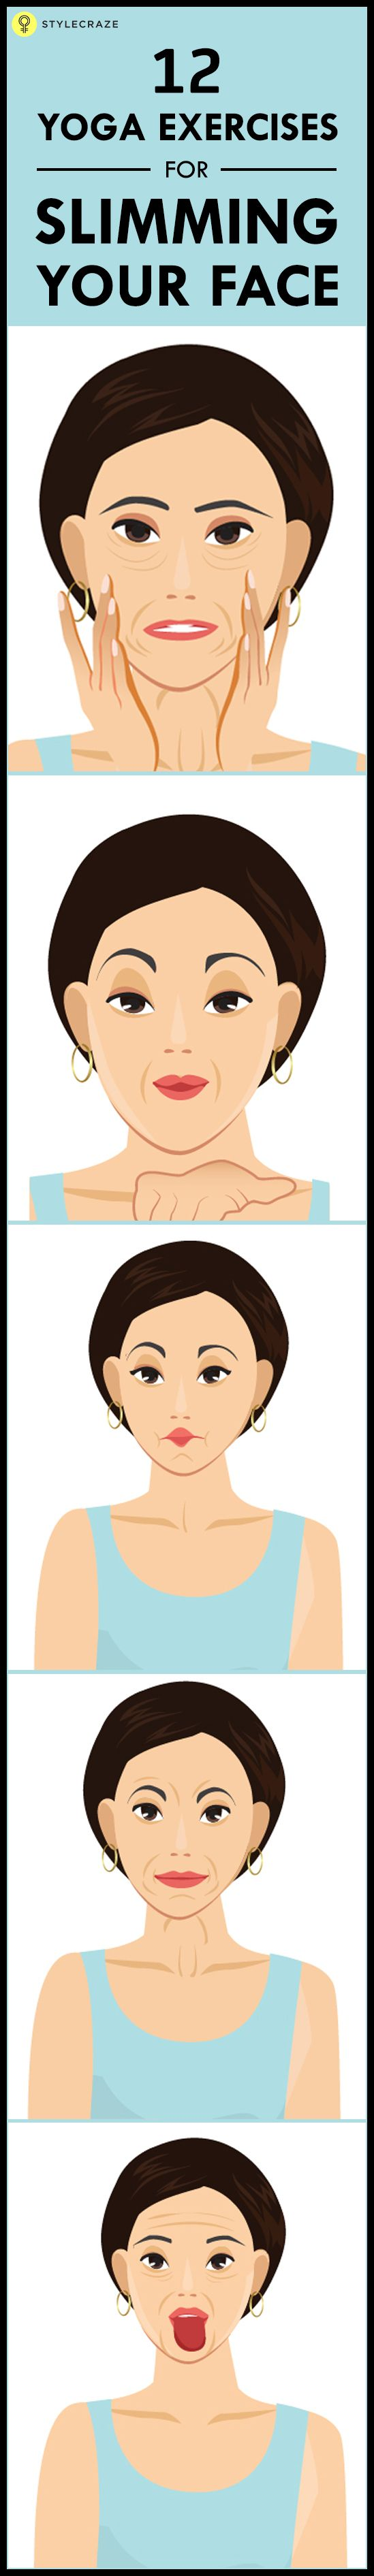 We all know yoga helps us reduce belly fat, and you can also lose weight through yoga. So what can you do to get rid of those flabby cheeks and double chin? Well, there are a number of effective facial exercises – and that's what this post is all about. Read on to know more about the yoga exercises for slimming your face. #Yoga